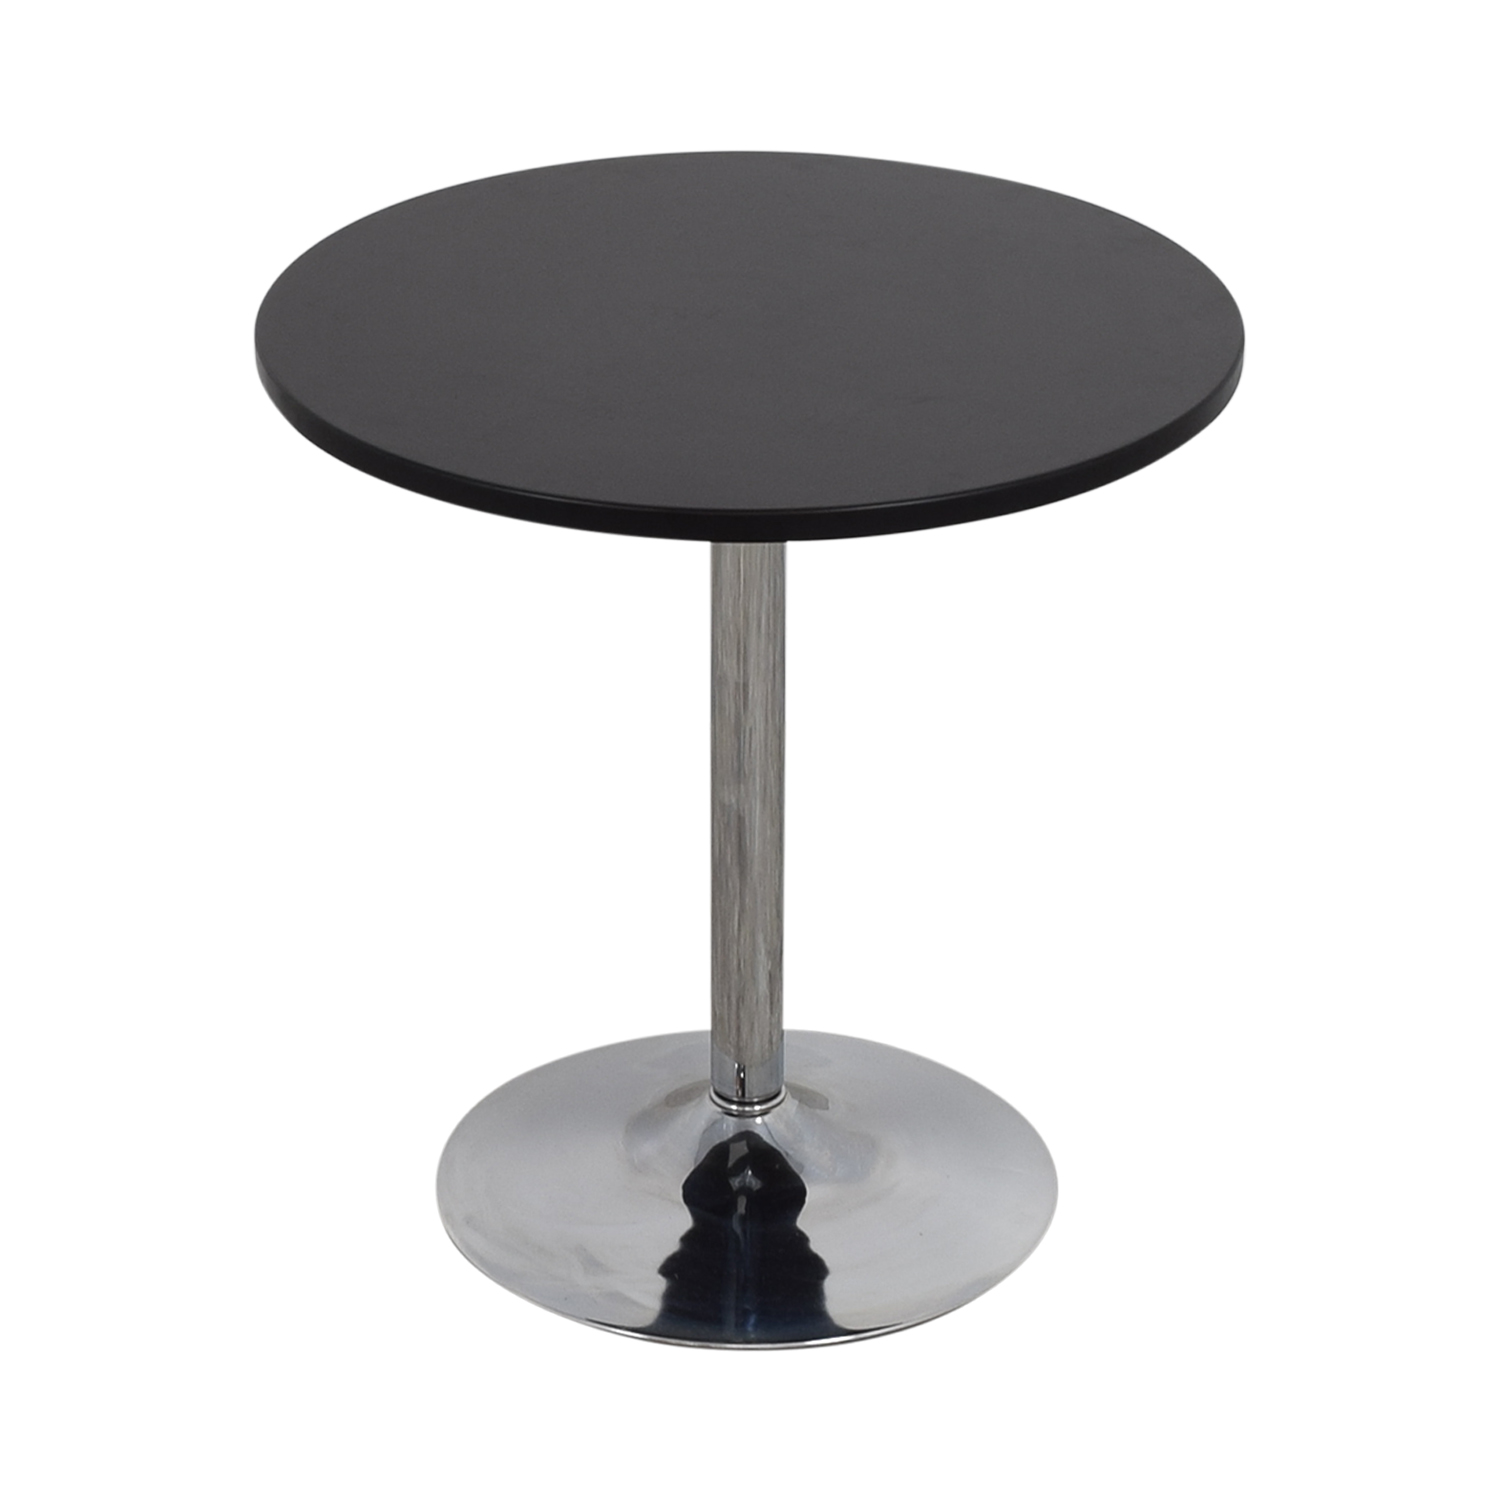 CB2 CB2 Wood and Chrome Cafe Table Tables